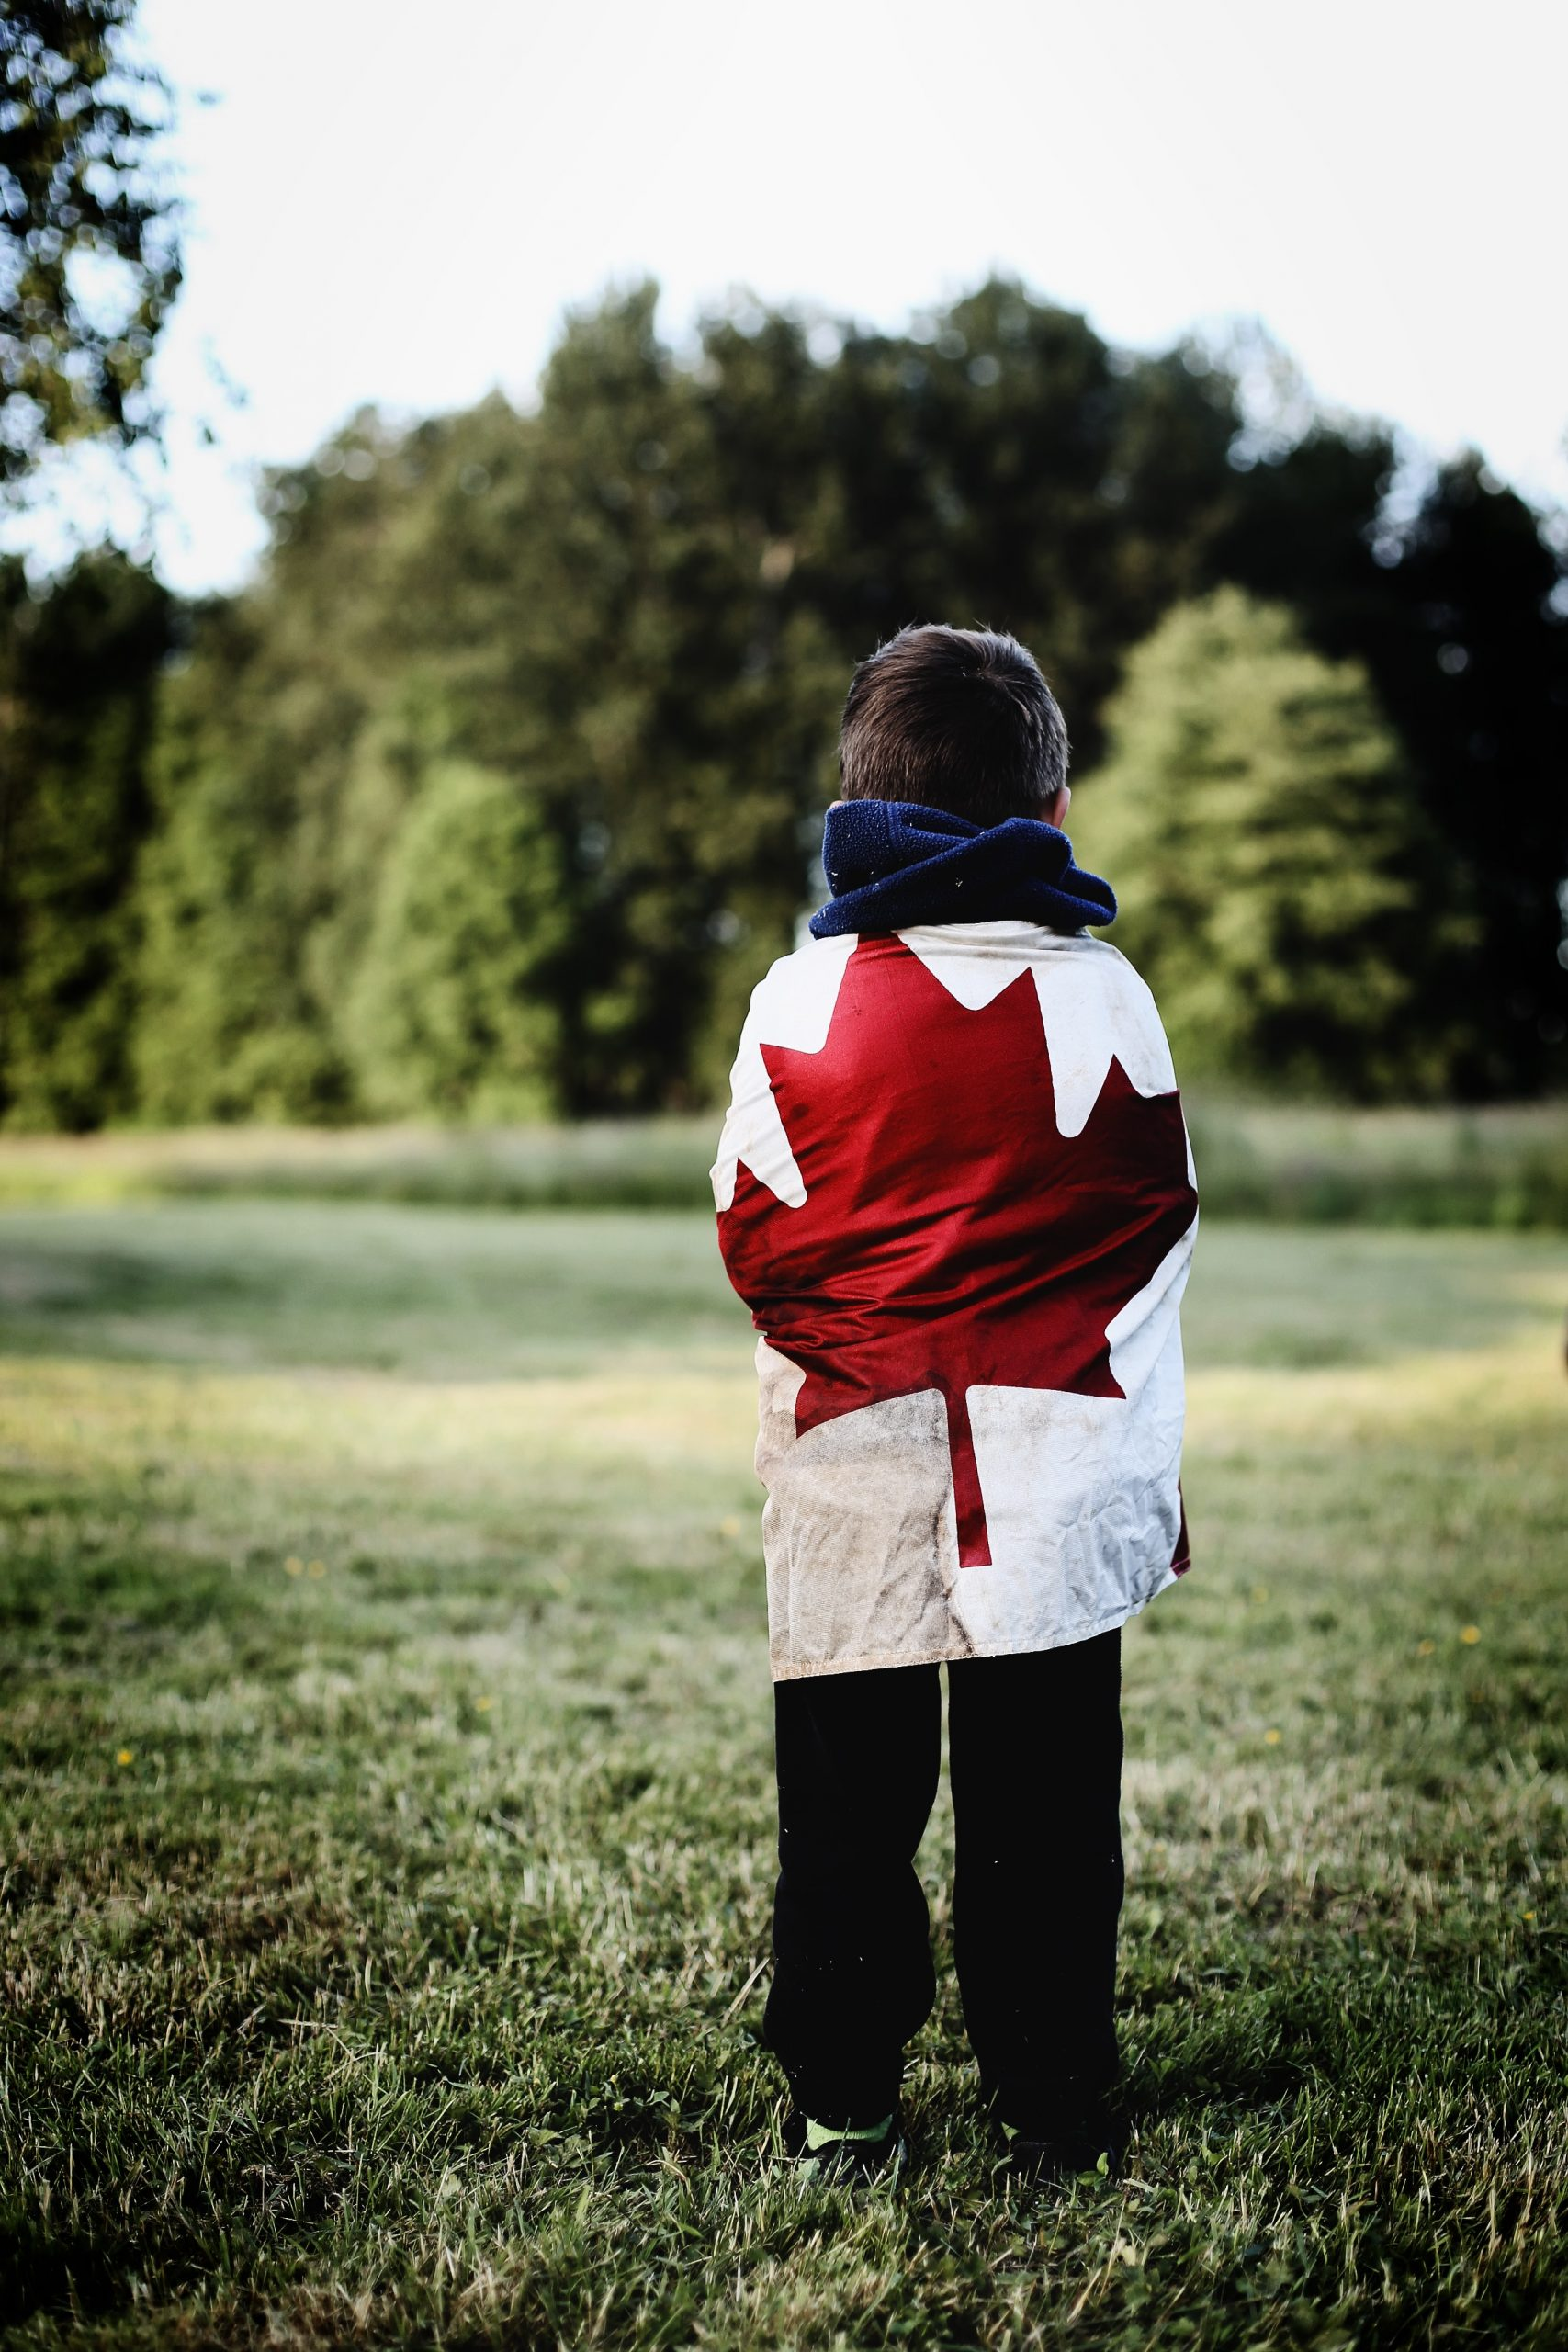 Youth wrapped in Canadian flag on the field